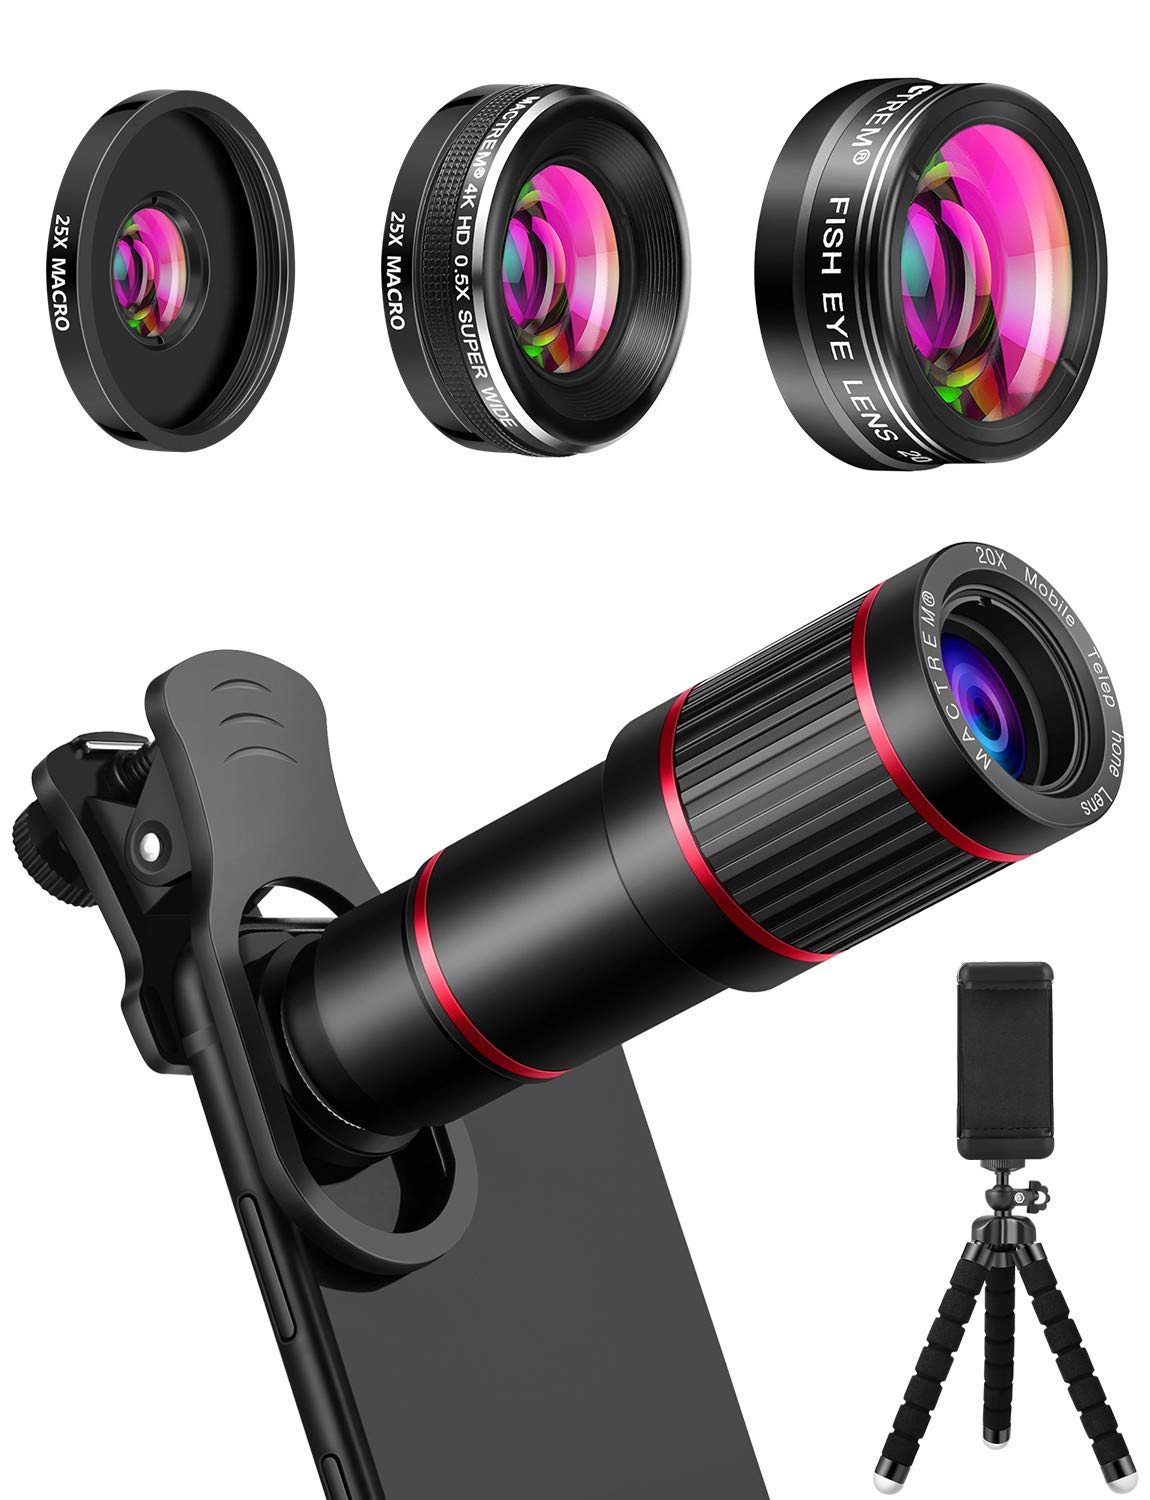 MACTREM Phone Camera Lens Phone Lens Kit 4 in 1, 20X Telephoto Lens, 205° Fisheye Lens, 0.5X Wide Angle Lens & 25X Macro Lens(Screwed Together), Compatible with iPhone 8 7 6 6s Plus X XS XR Samsung